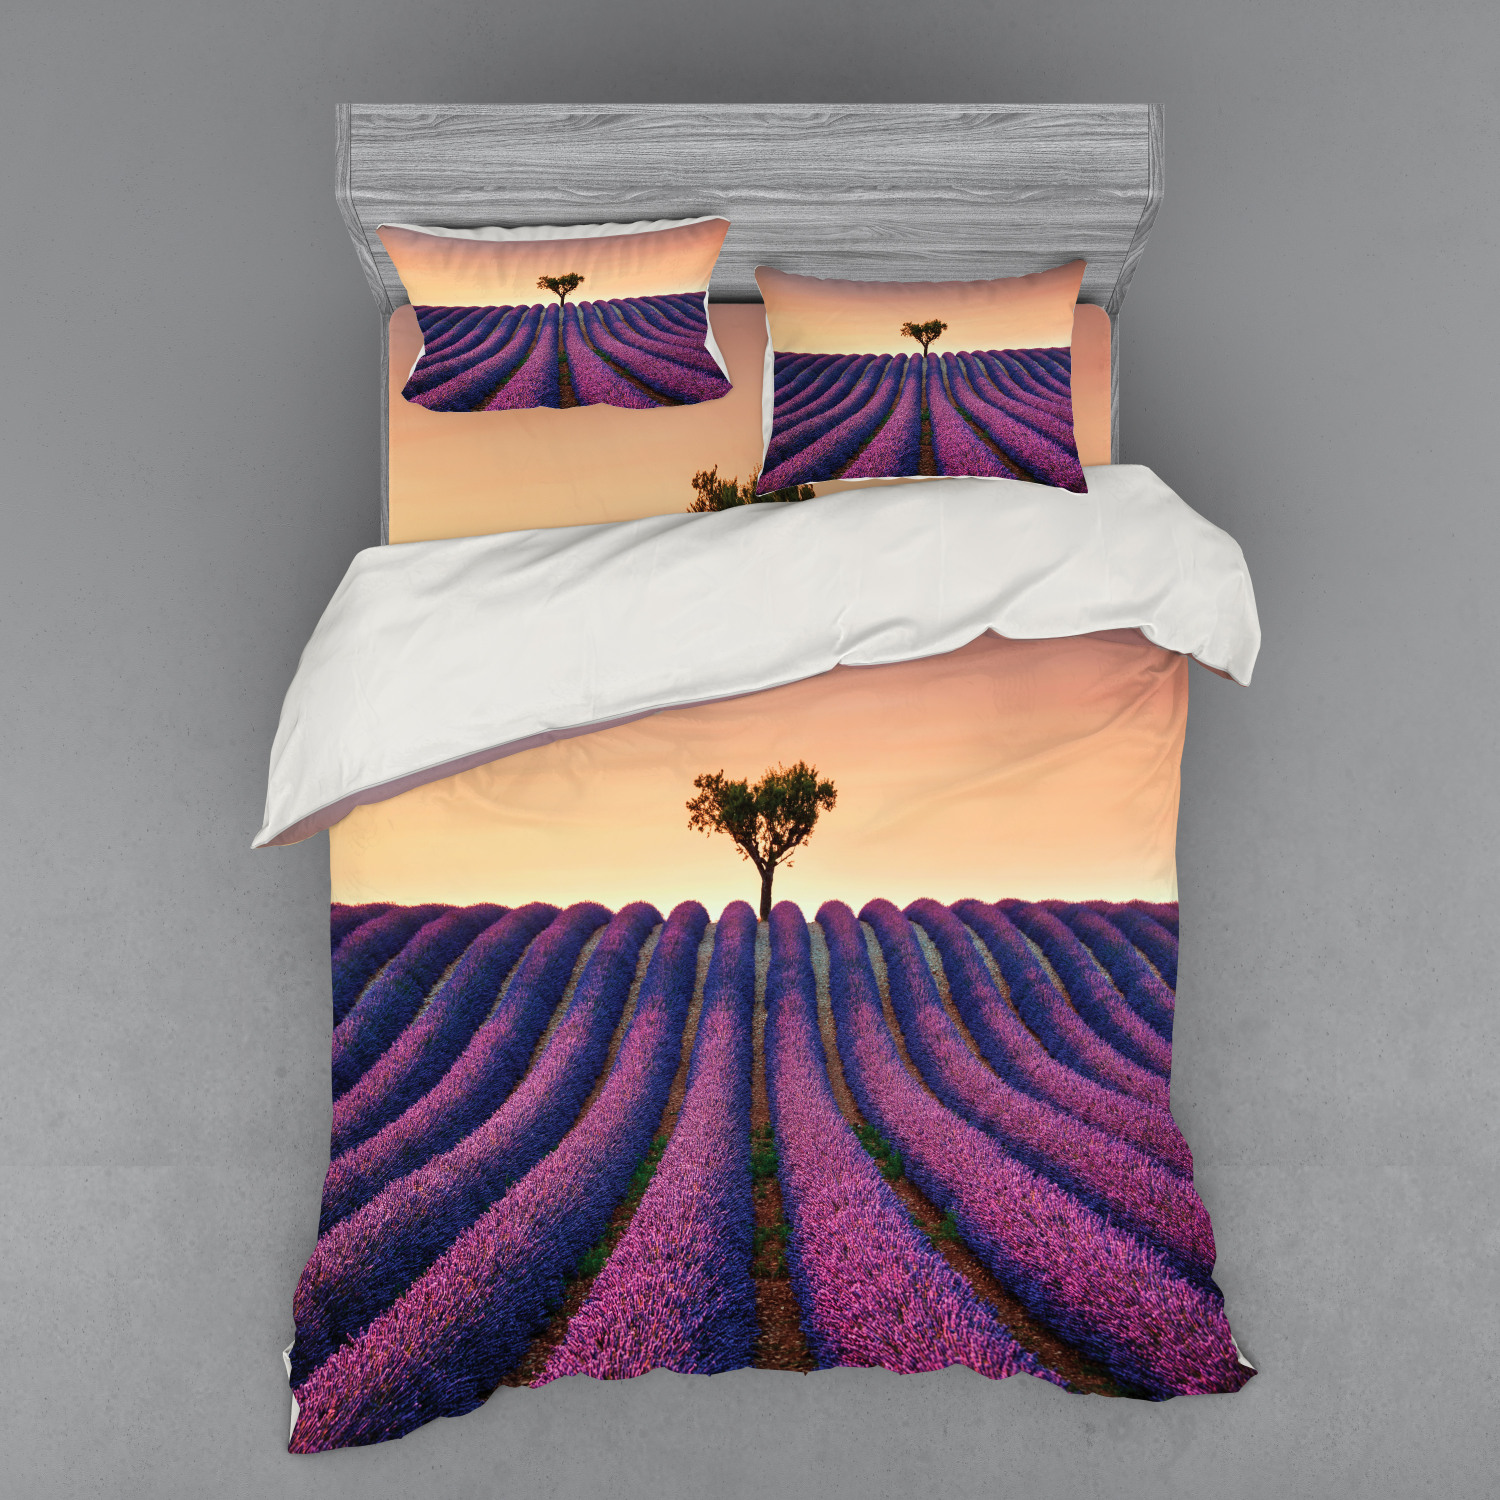 Tree Duvet Cover Set Lavender Flowers Blooming Field And A Tree Uphill On Sunset Valensole France Print Bedding Set With Shams And Fitted Sheet 3 Sizes By Ambesonne Walmart Com Walmart Com